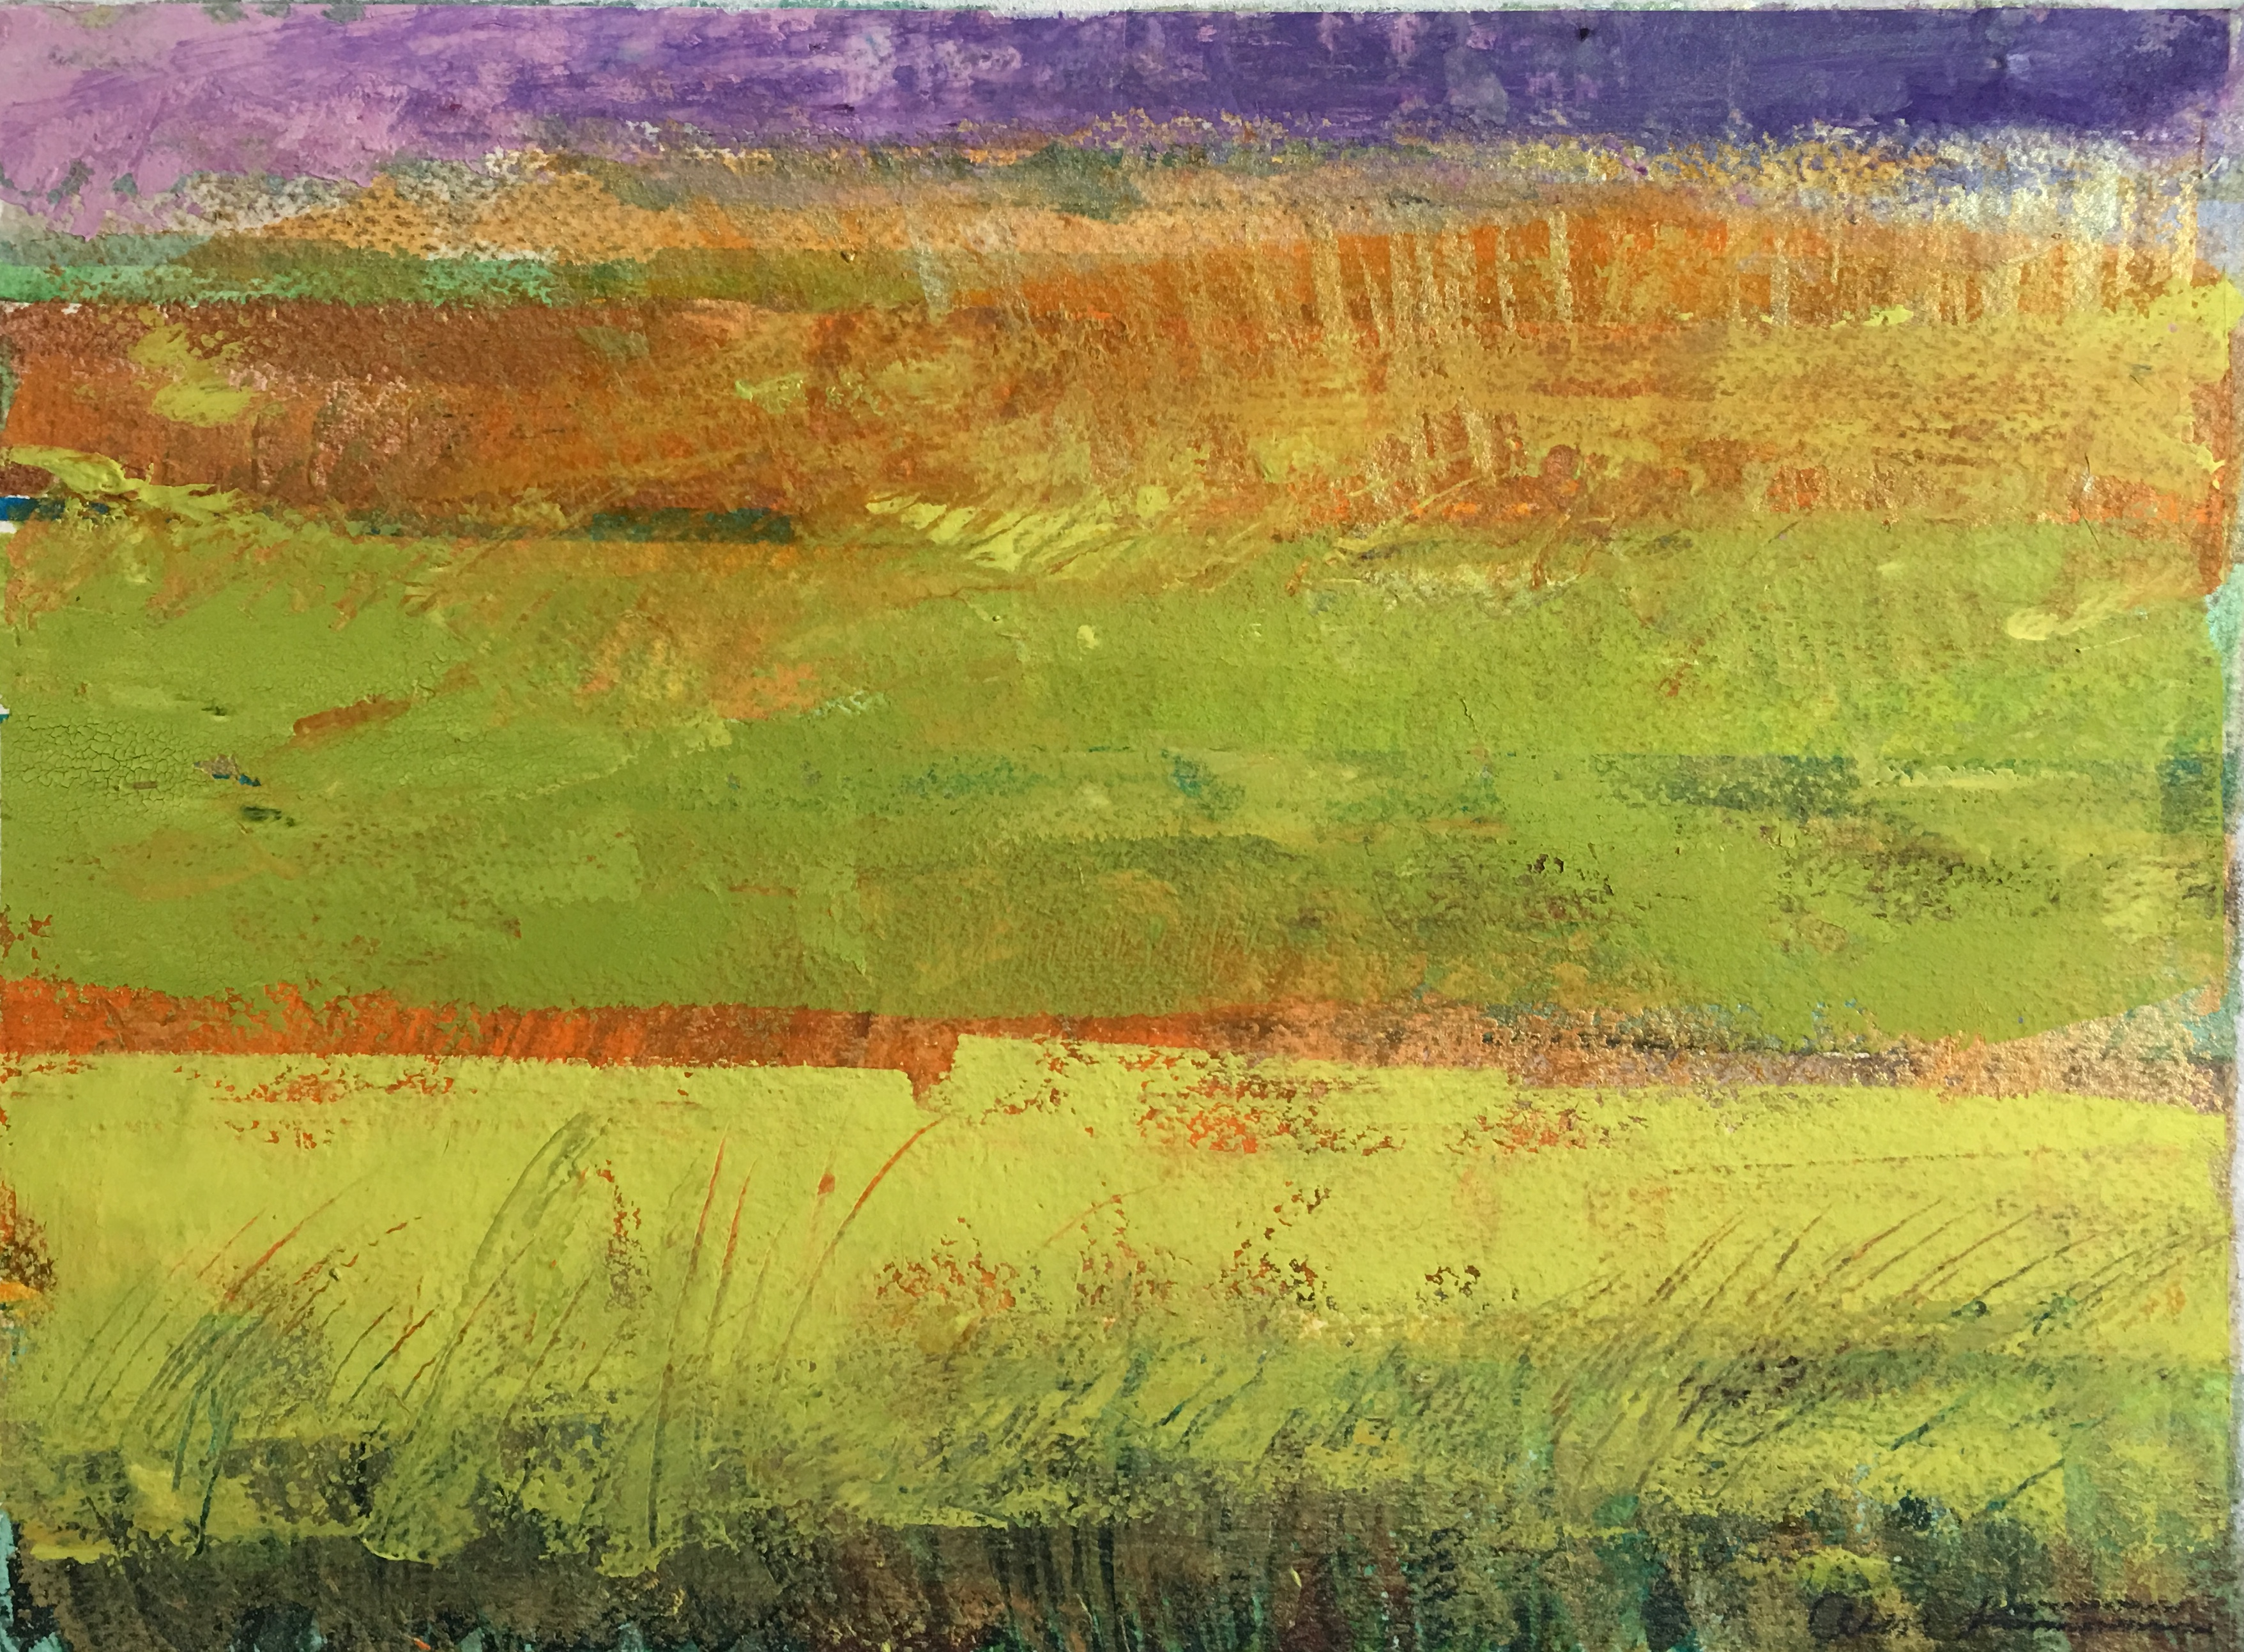 Field of Chartreuse by Ann Stretton